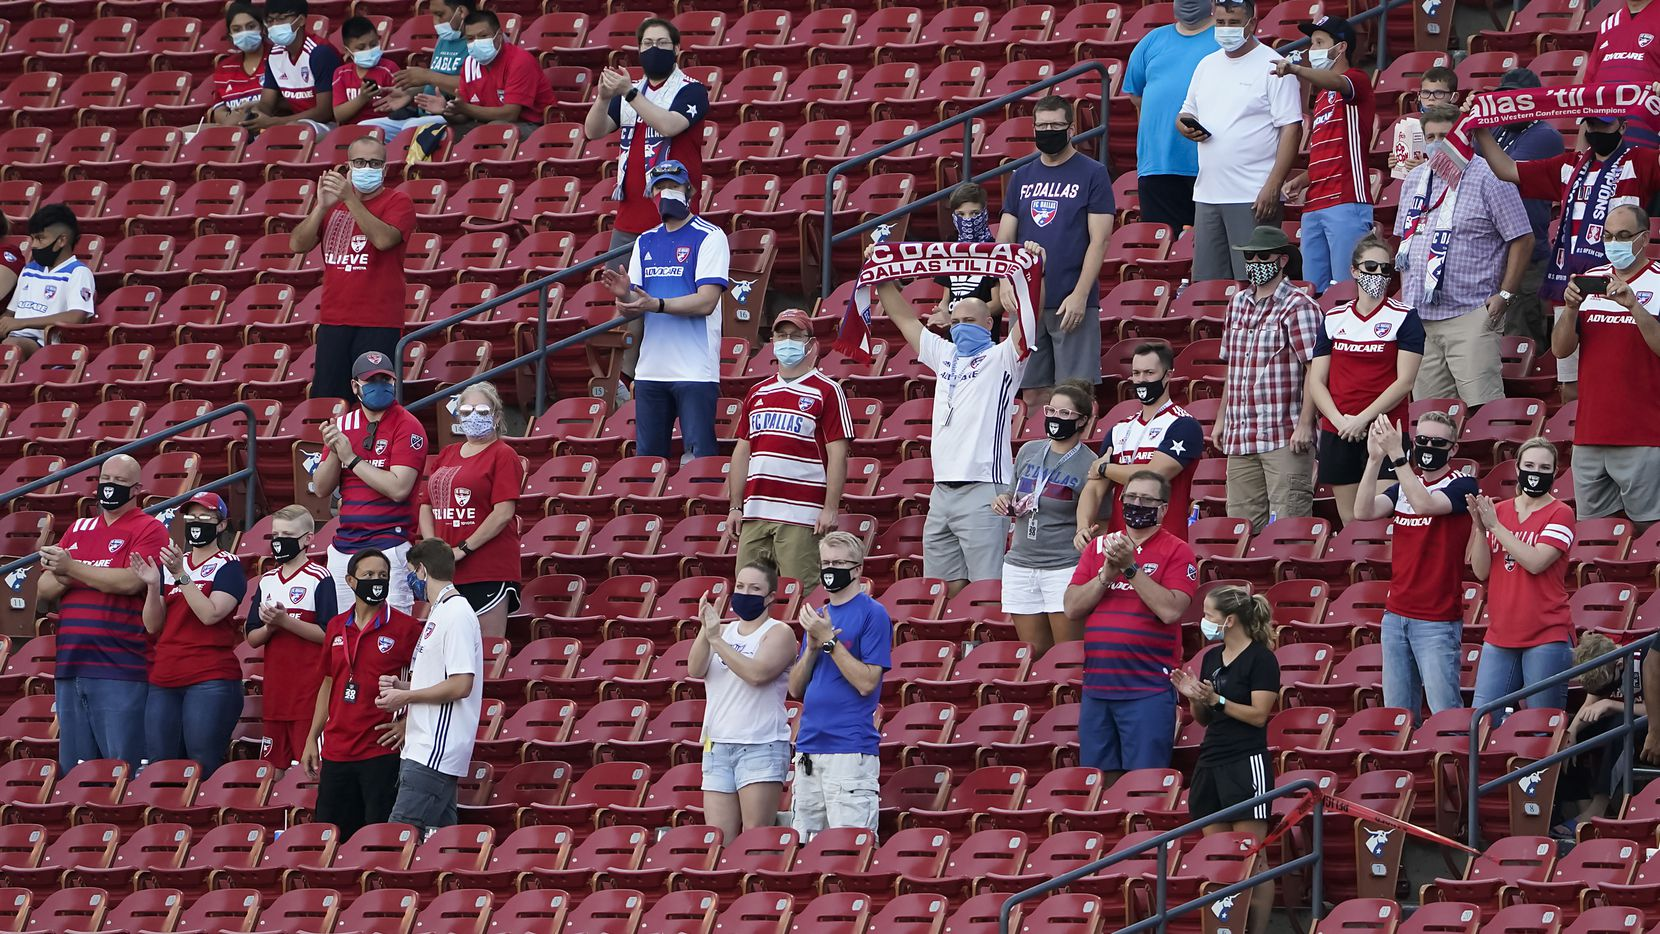 FC Dallas supporters cheer as their team takes the field before an MLS soccer game against the Nashville SC at Toyota Stadium on Wednesday, Aug. 12, 2020, in Frisco, Texas.